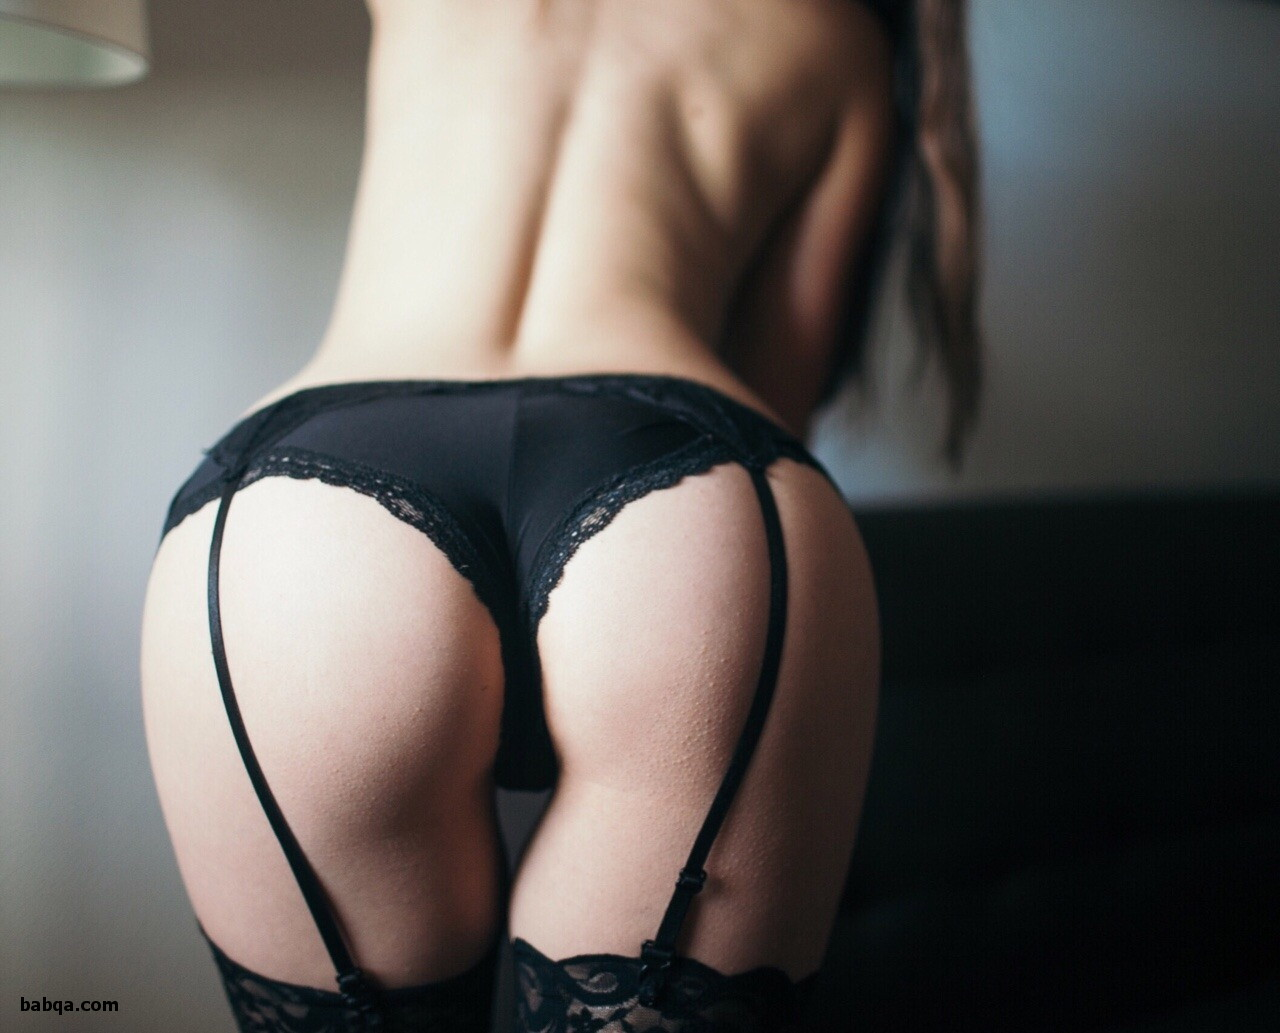 lingerie special and milfs in sexy lingerie